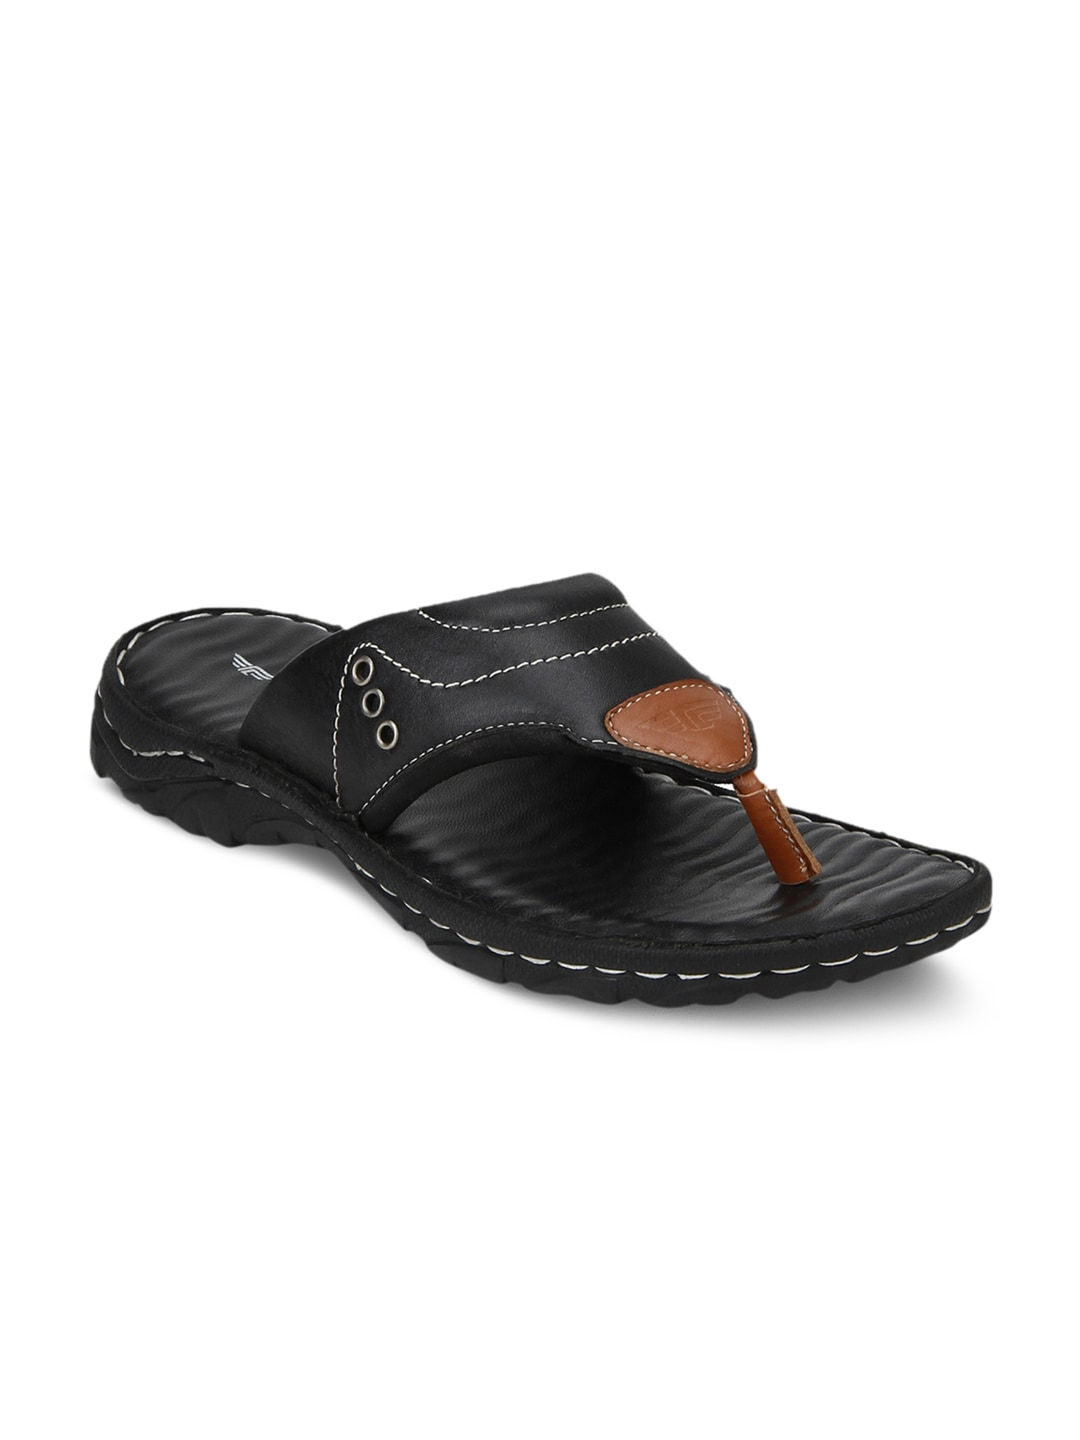 387377b6a5a7 Sandals - Buy Sandals Online for Men   Women in India